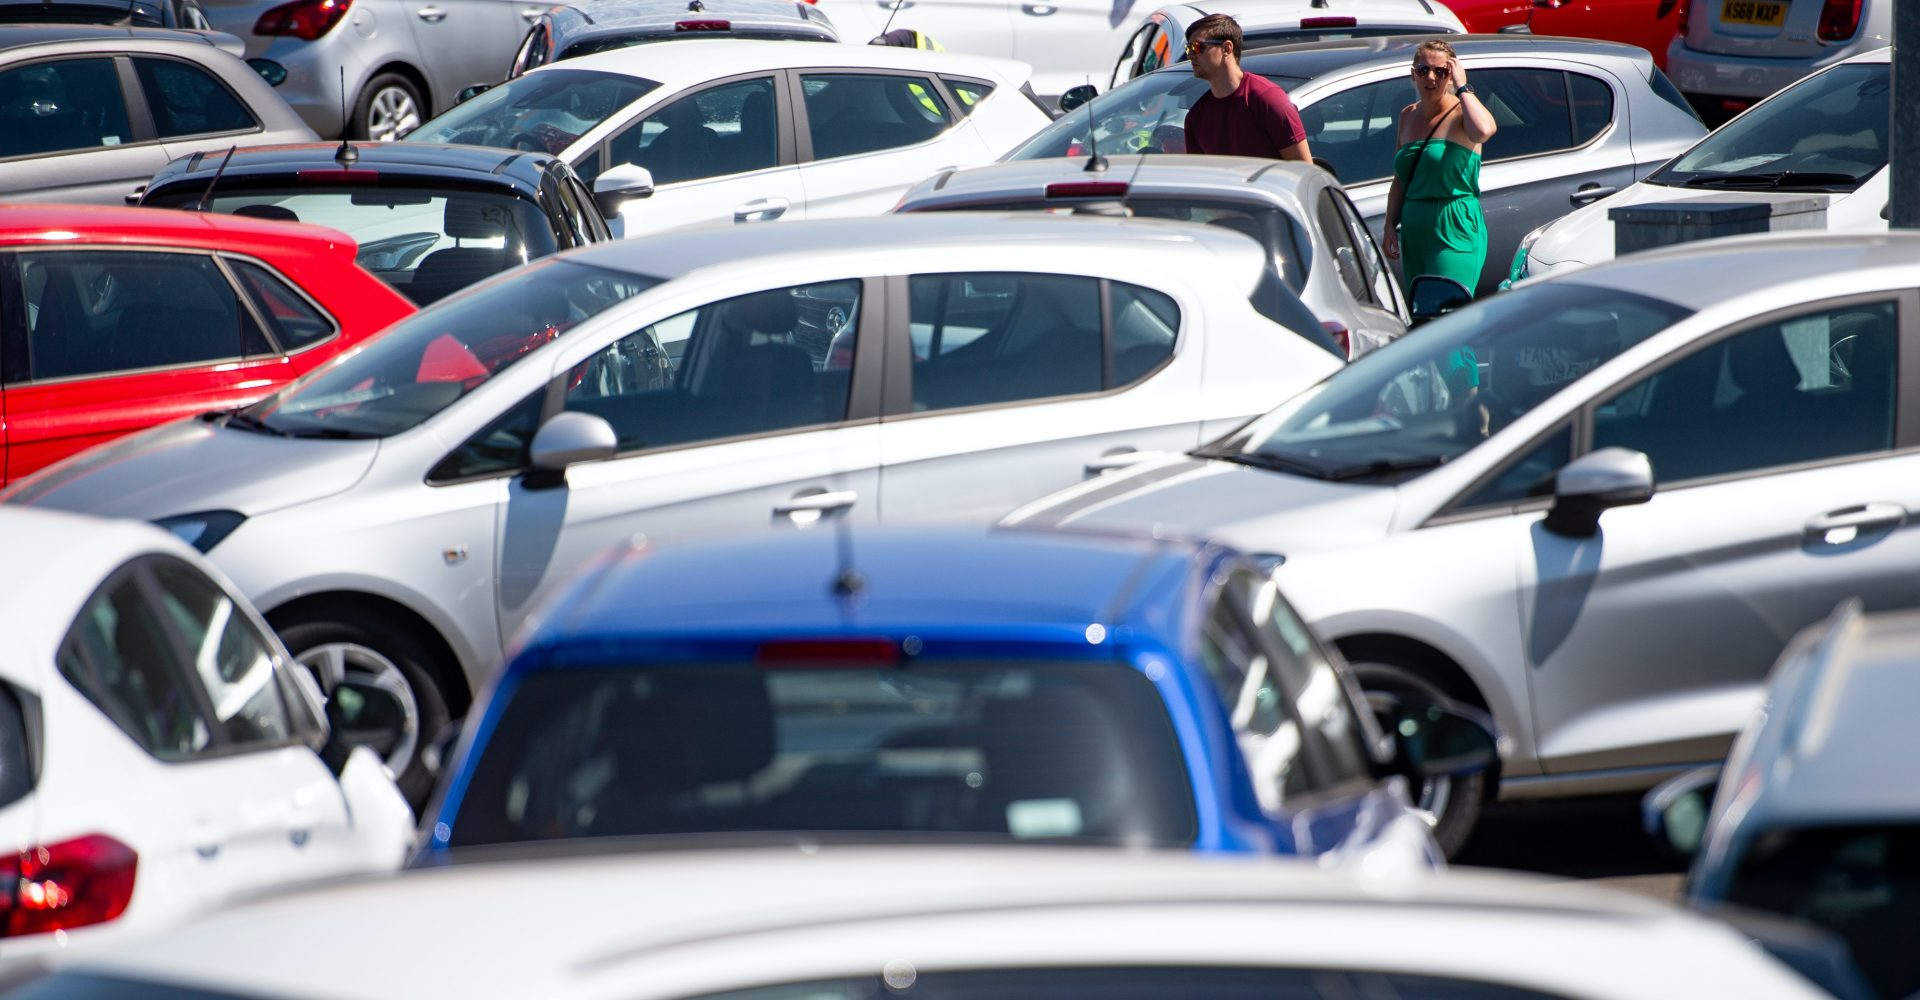 Three-quarters of Brits won't buy a car without viewing it in person first, says survey